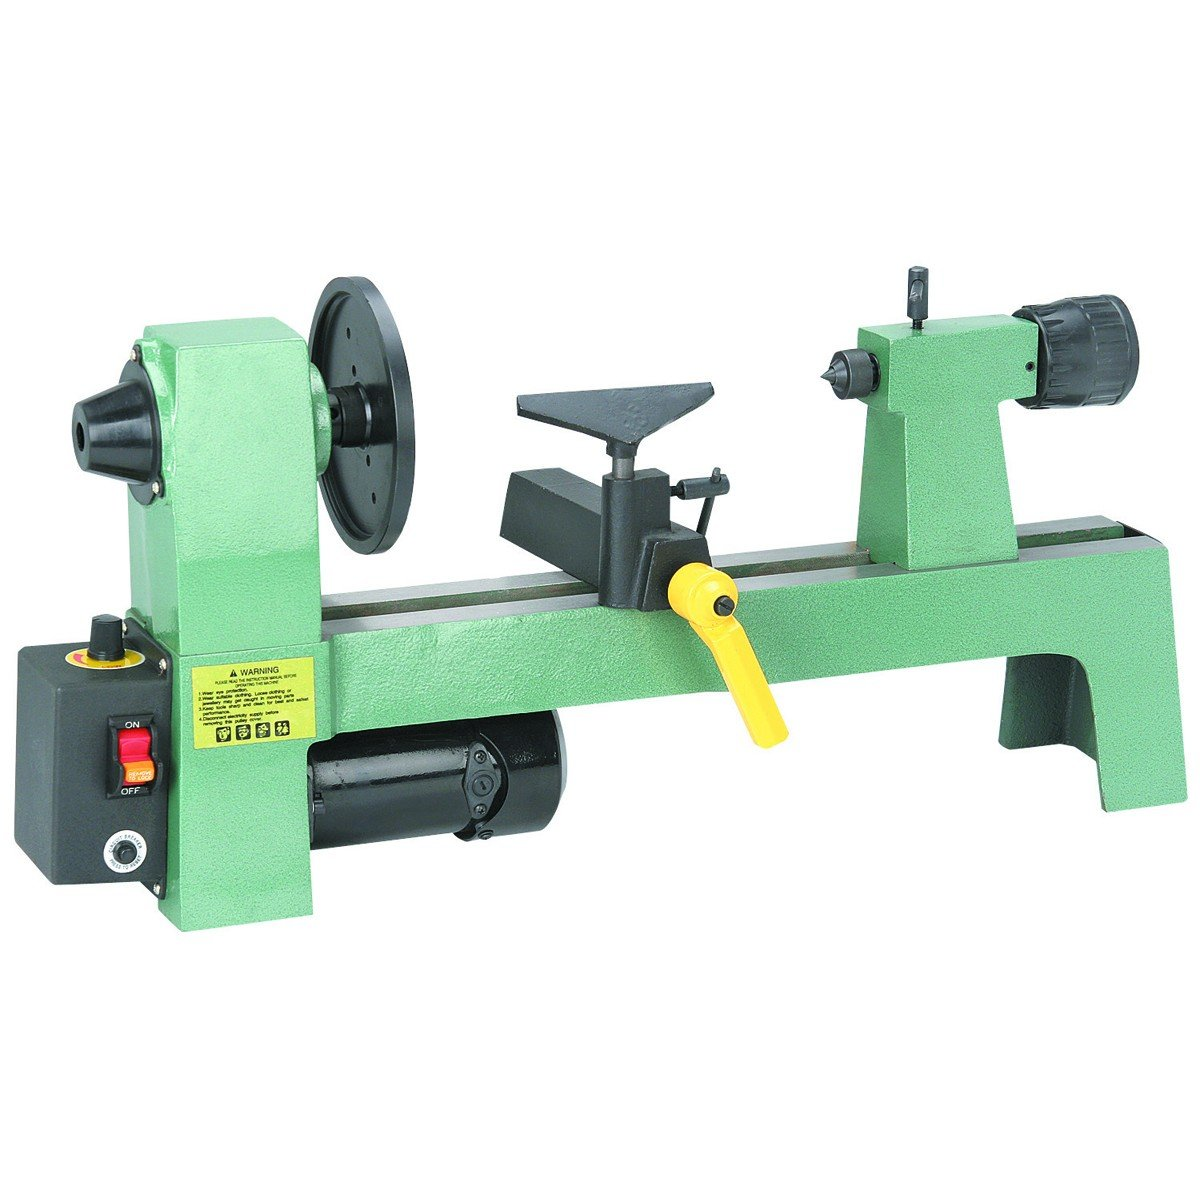 Bench Top Wood Lathe 8in x 12in high quality mt3 lathe real time center three bearing design tapered lathe power tools precision lathe bearing tool accessories